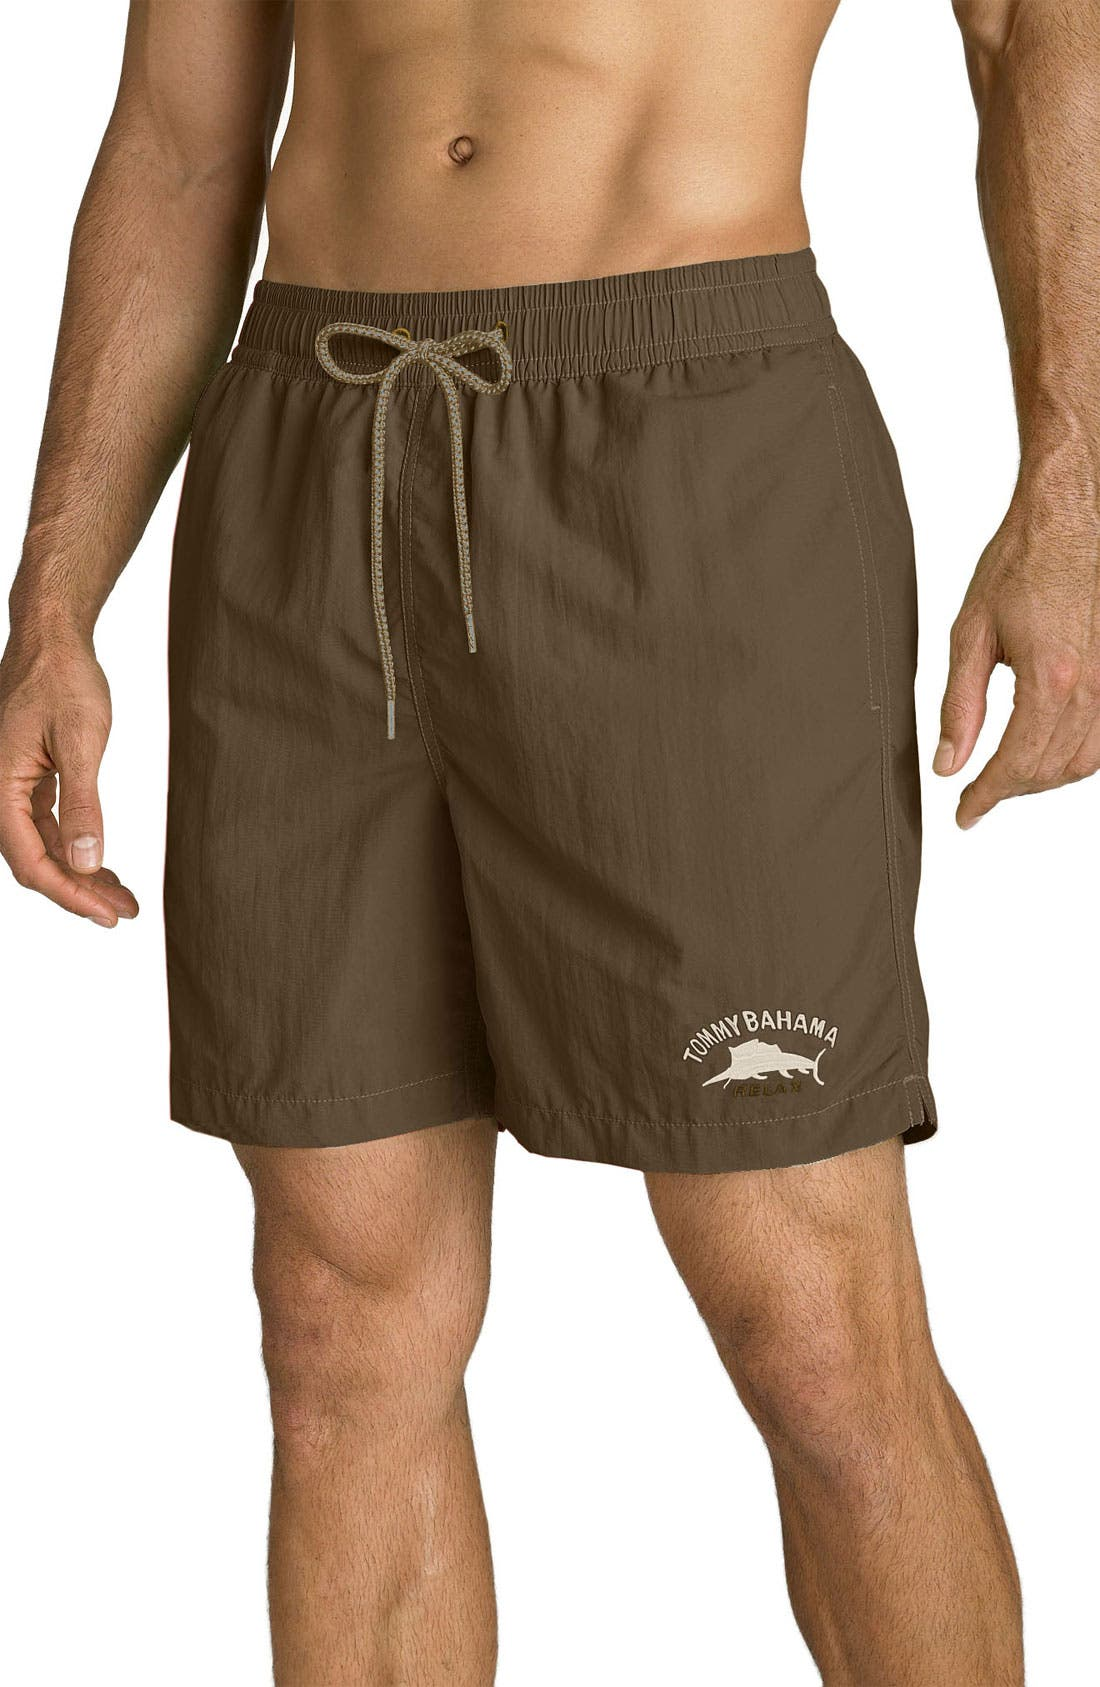 Alternate Image 1 Selected - Tommy Bahama Relax 'Happy Go Cargo' Volley Swim Trunks